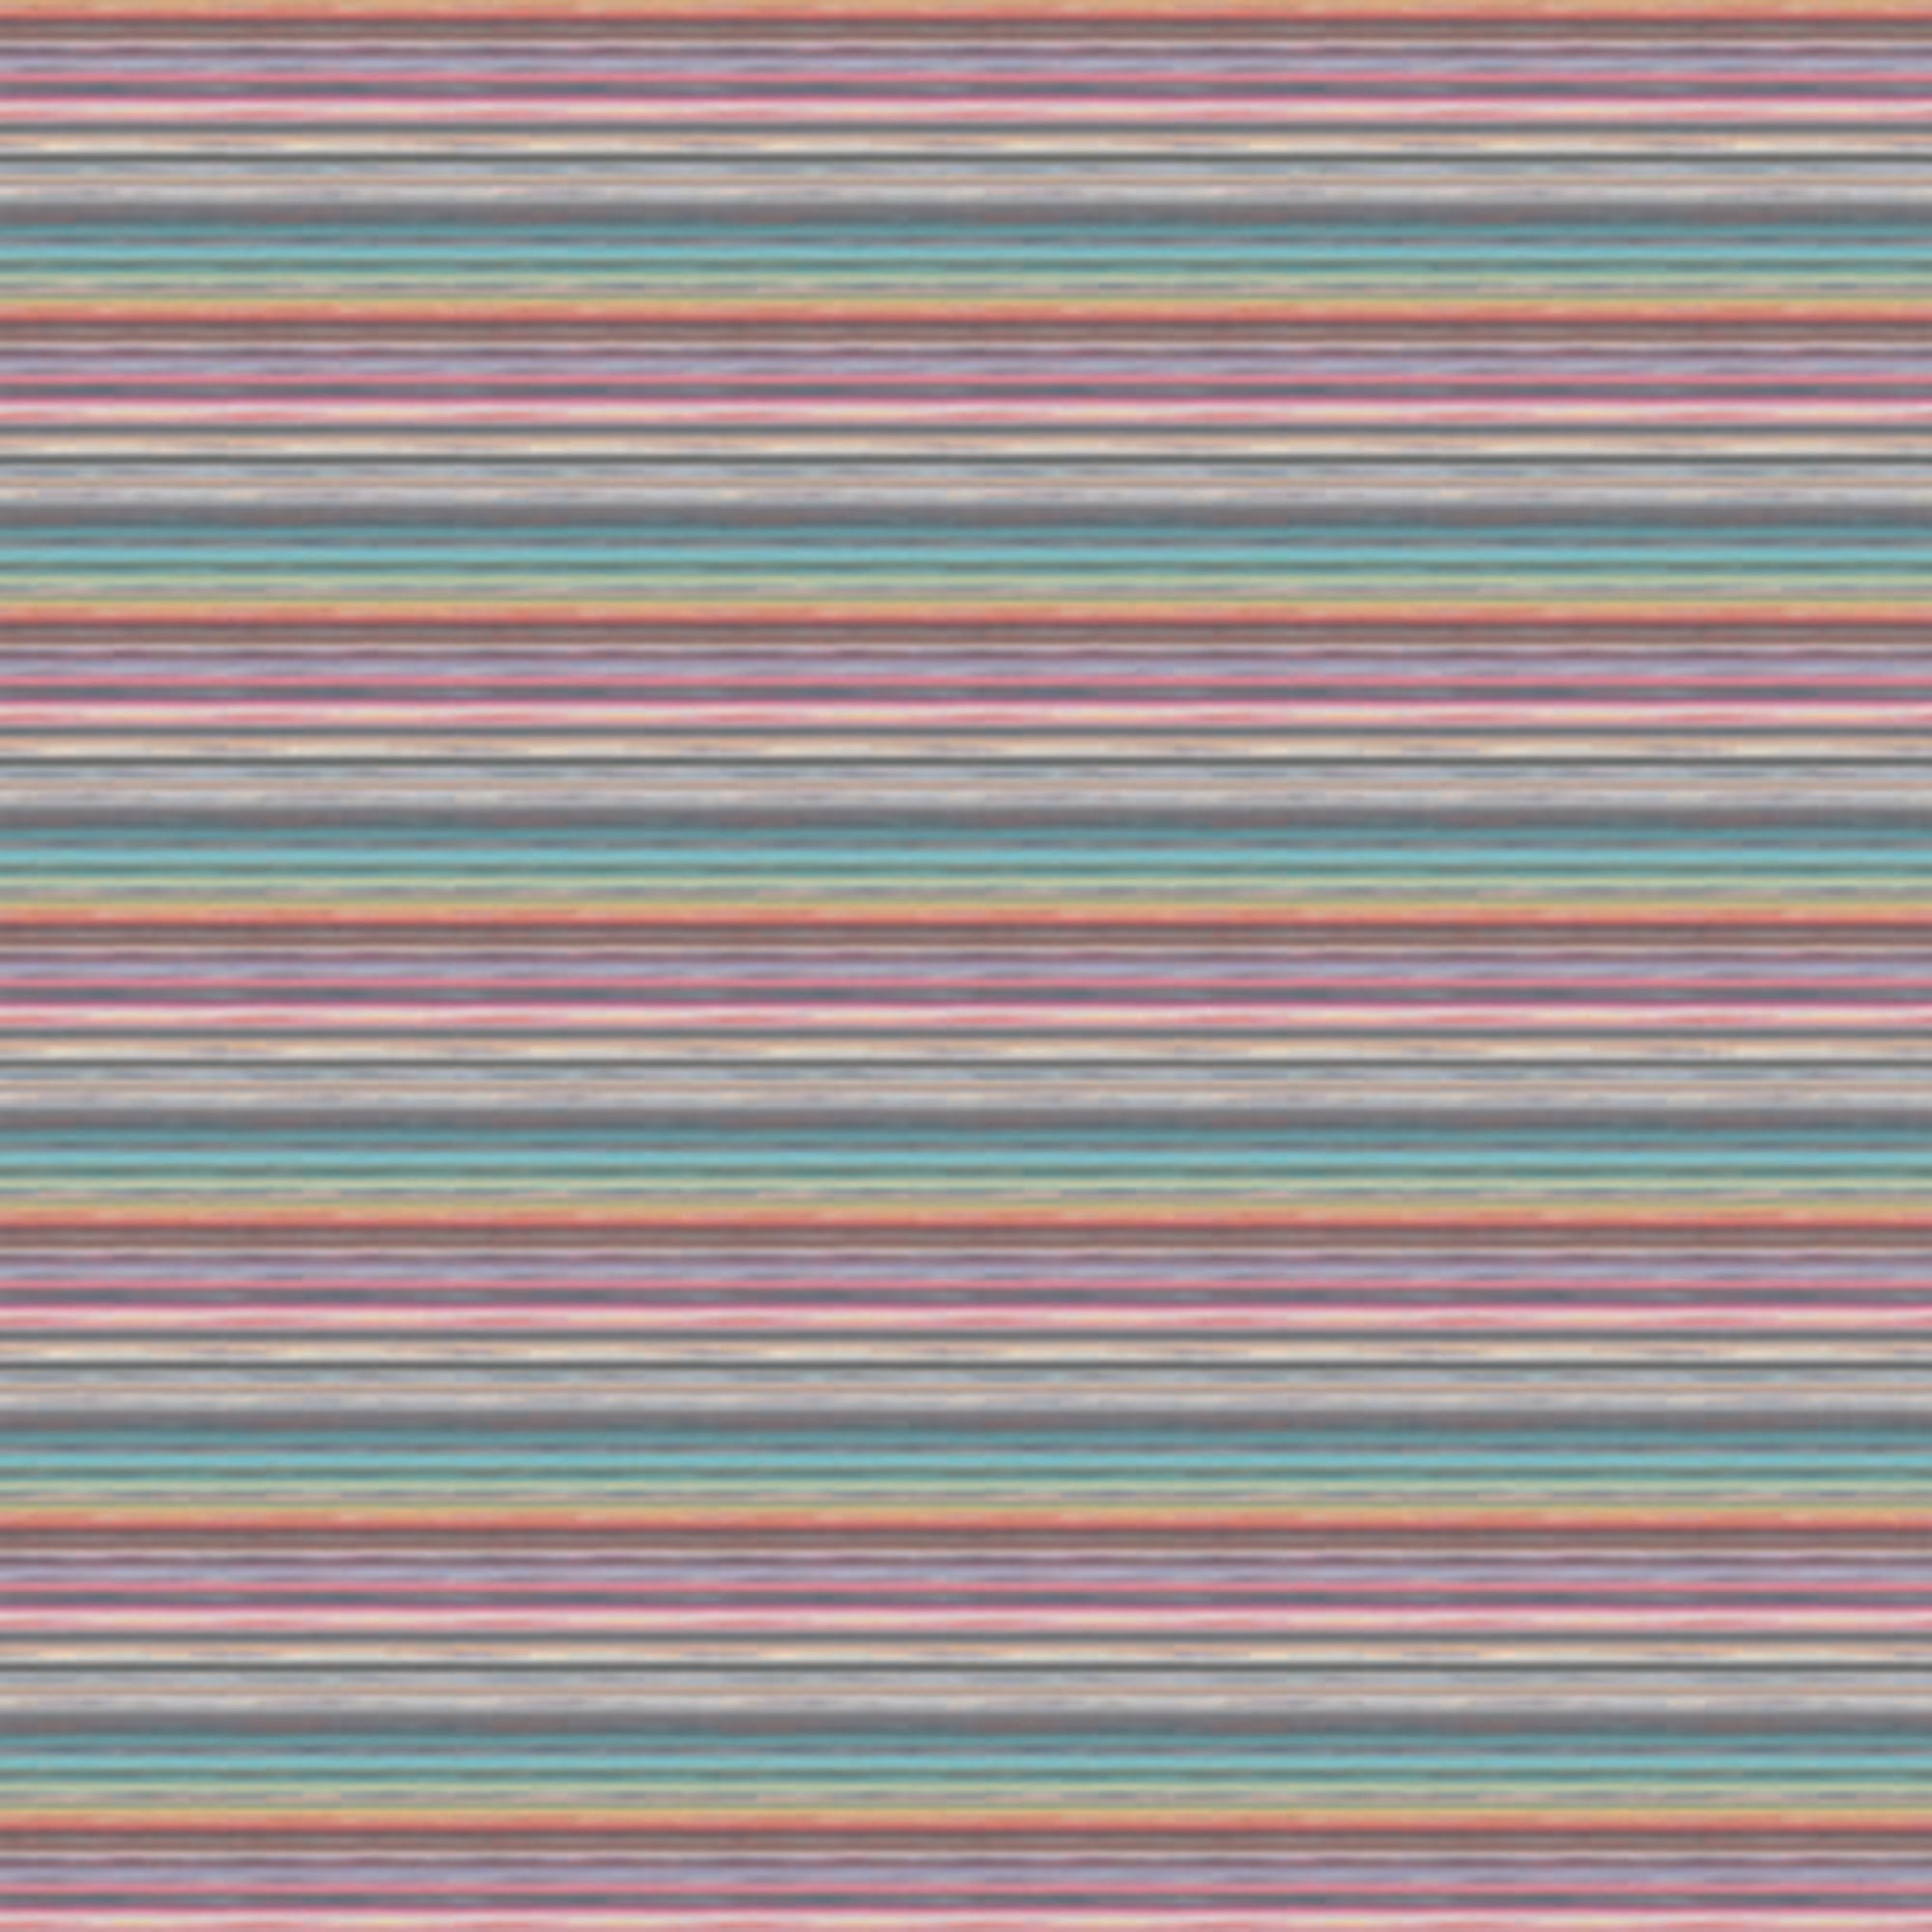 Textured Horizontal Stripe Print With Light Blues, Greens, Pinks, Purples, Browns And Greys. 10198, Riga Multicolour Orizzontale